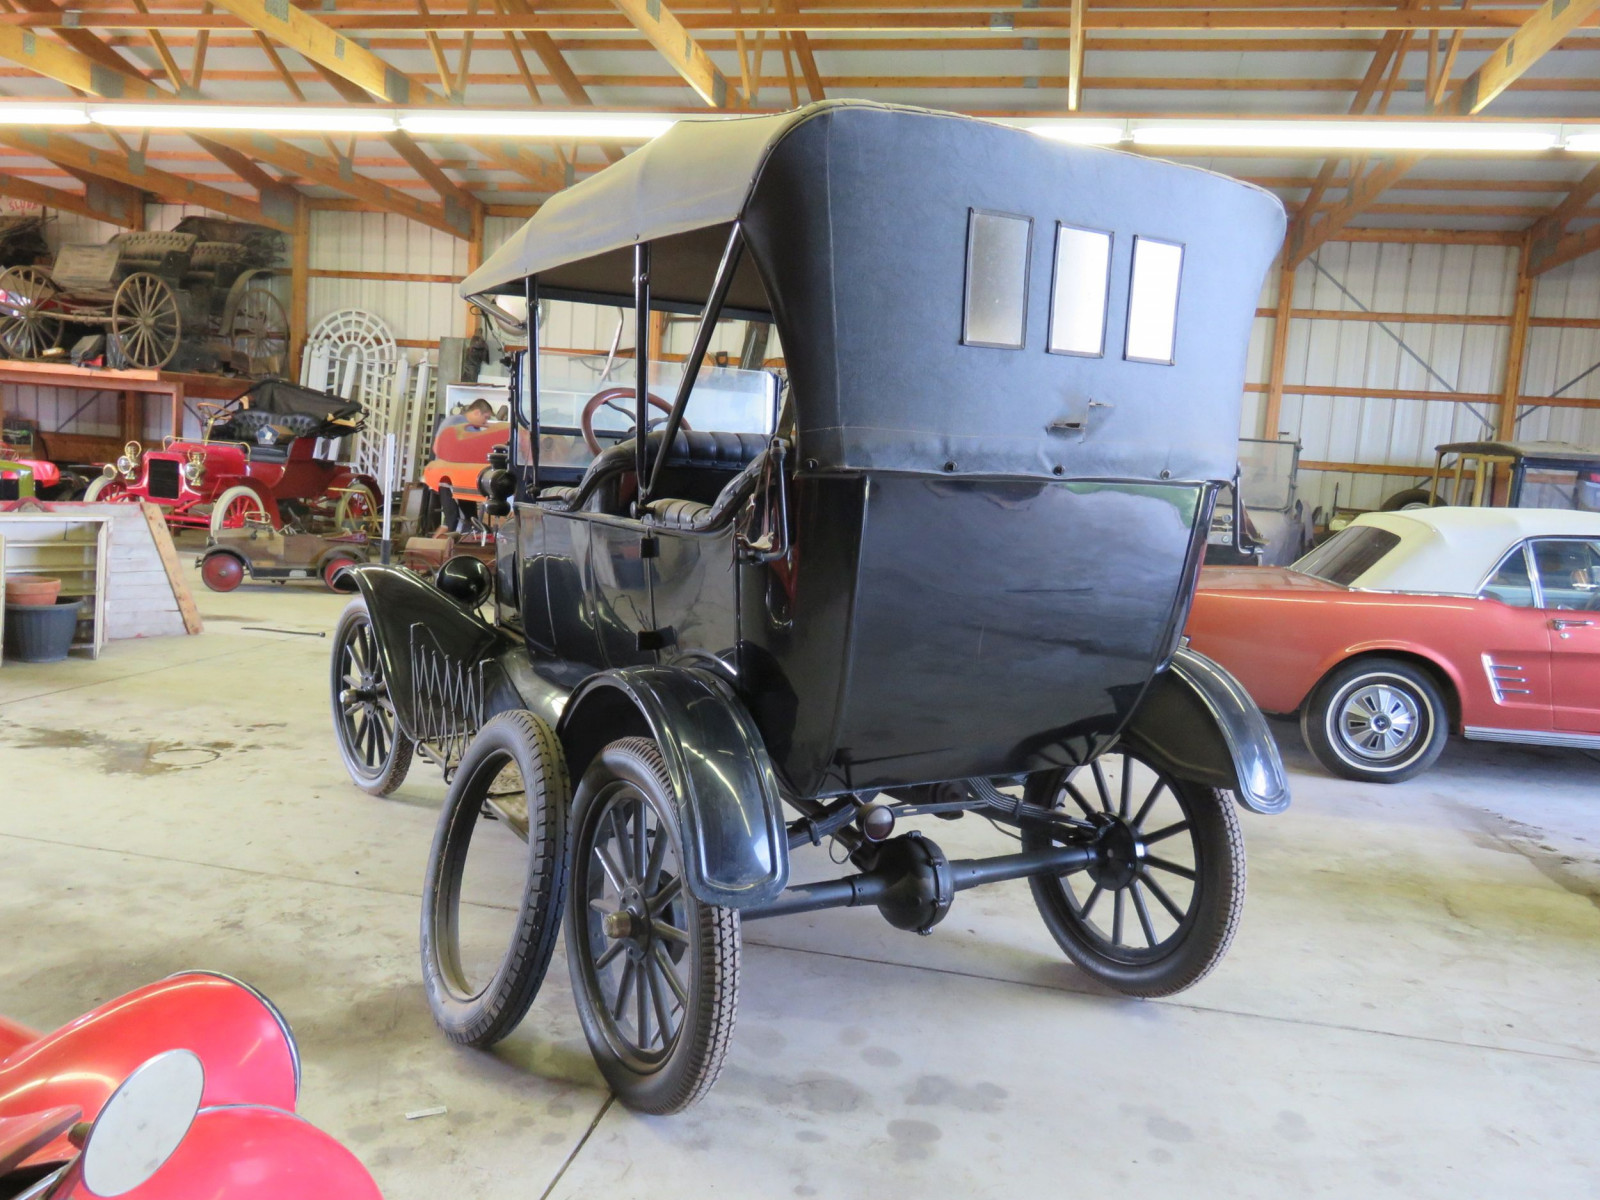 1918 Ford Model T Touring Car - Image 5